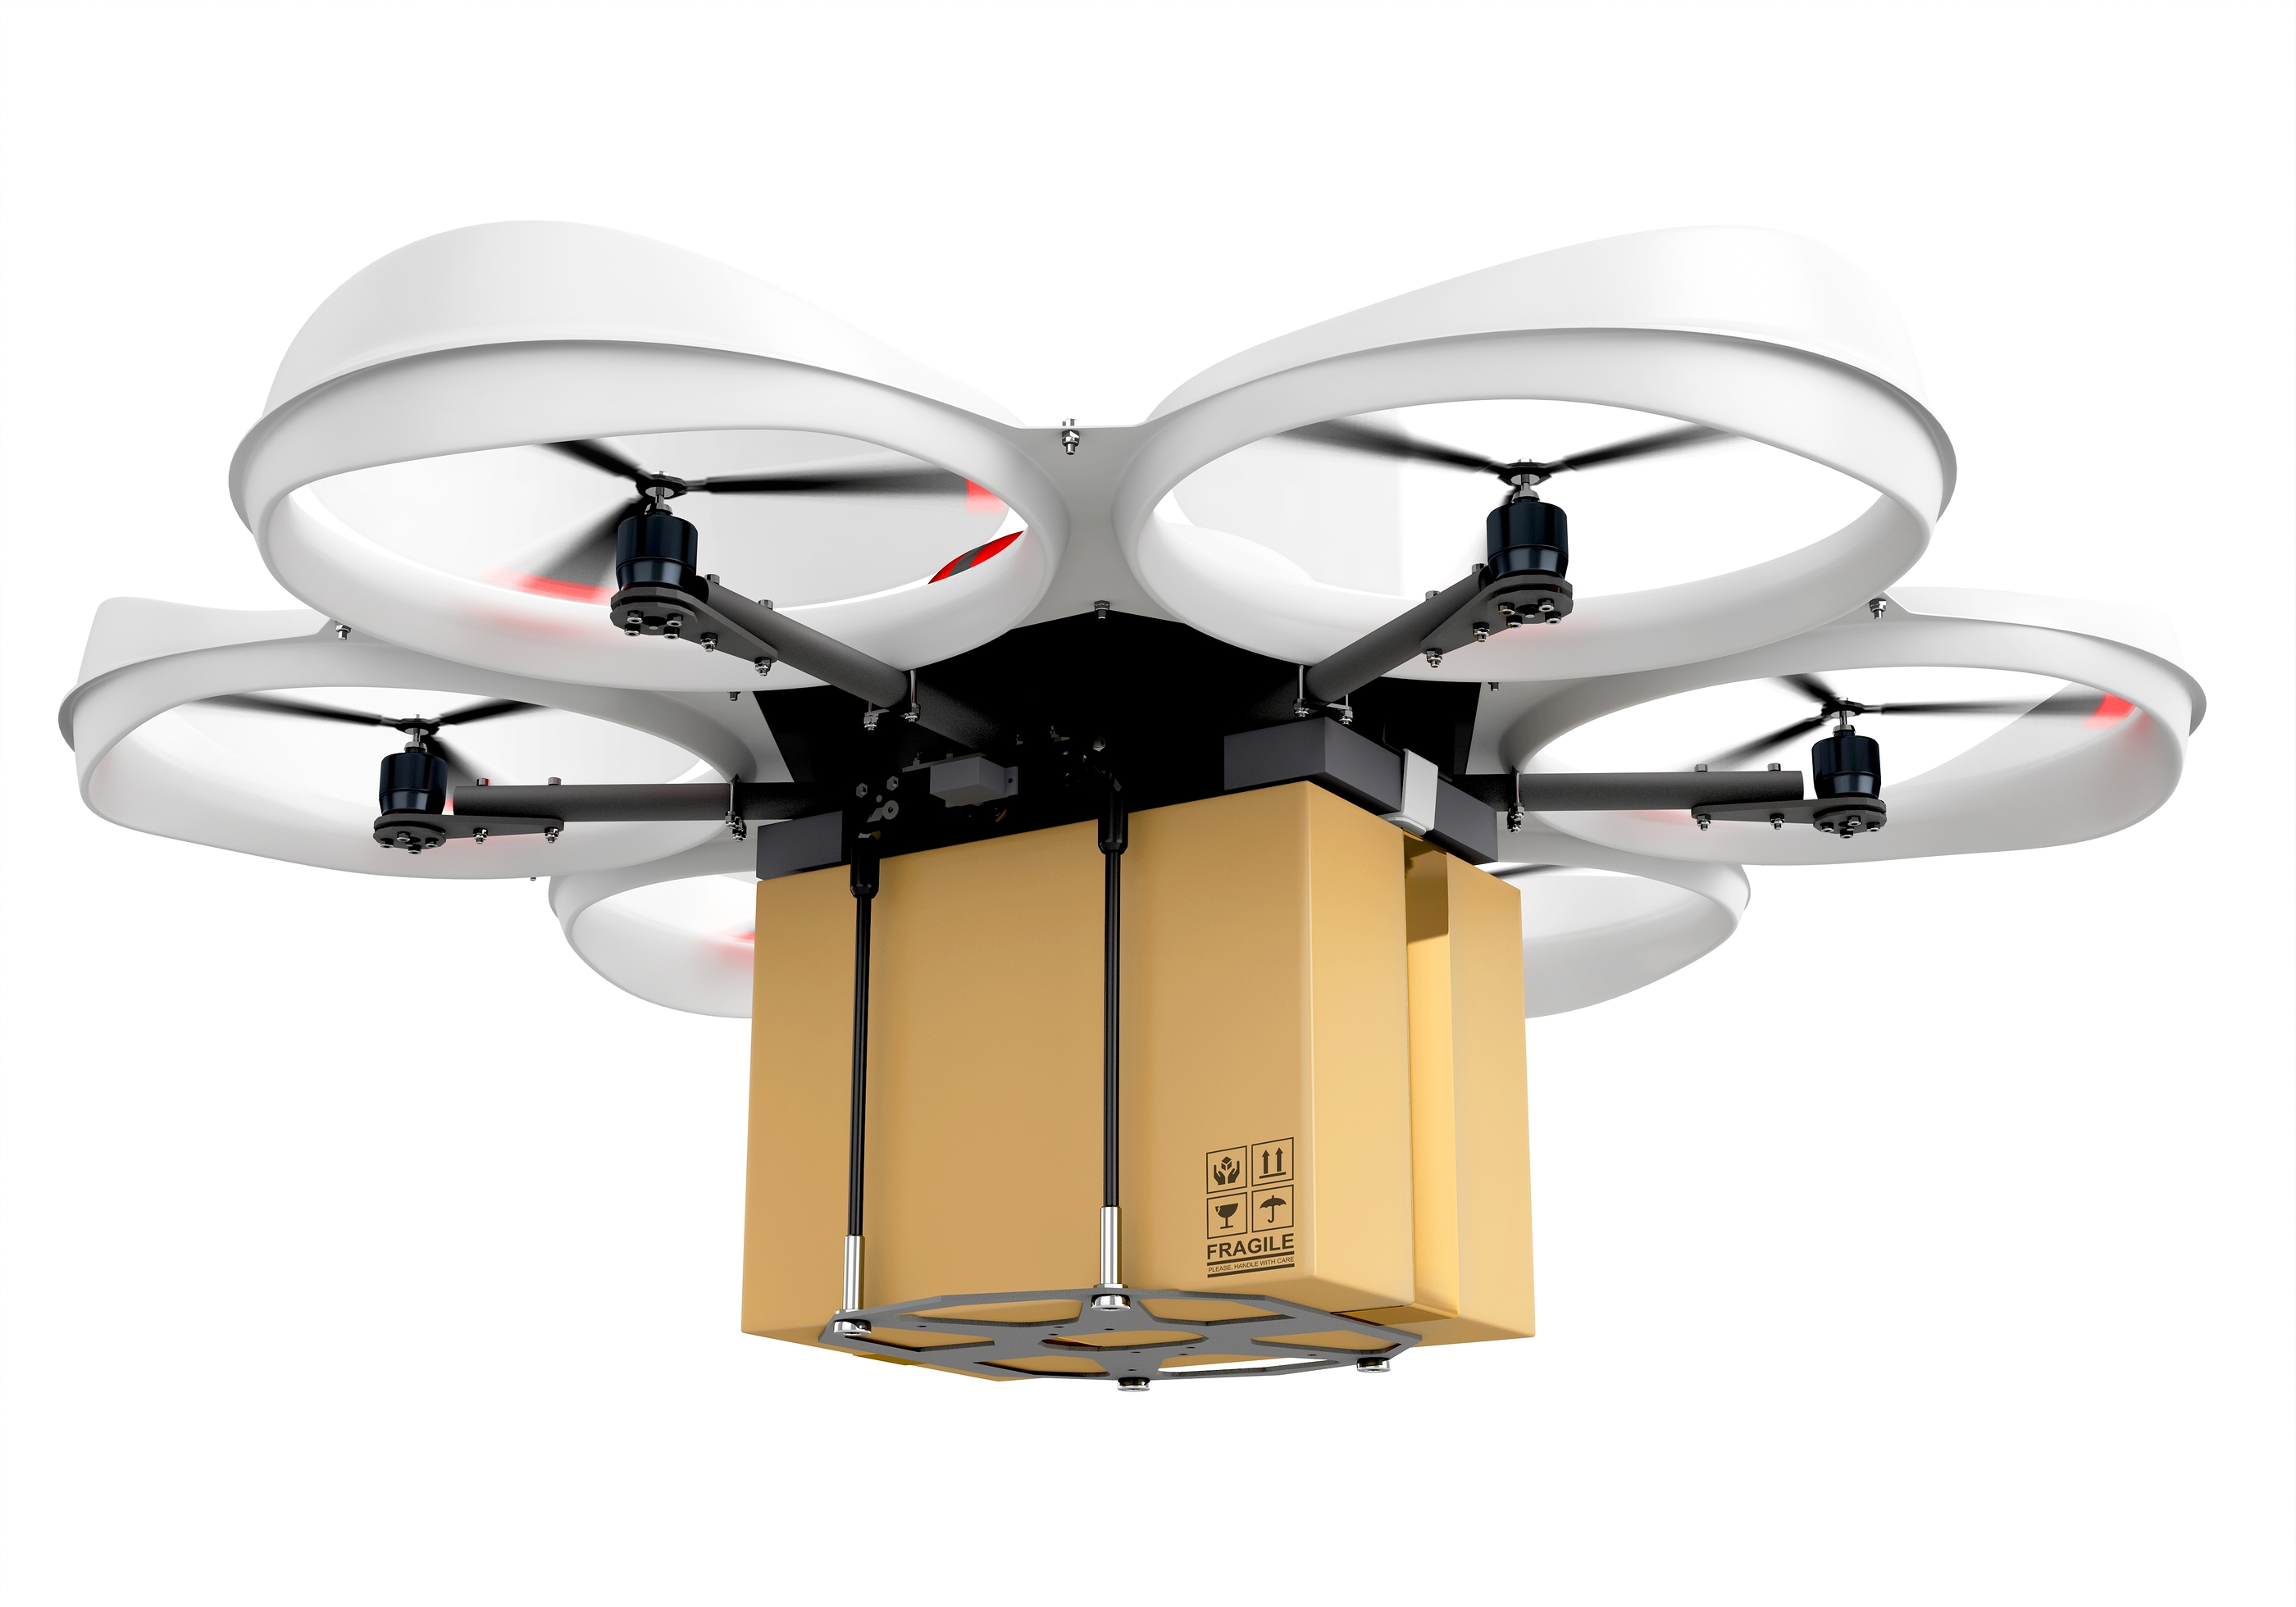 amazon delivery drones with 455360 on Ct Amazon Delivery Trucks Bsi 20151204 Story likewise Watch additionally Medical Drones besides Amazon Echo Heather Grey Fabric 10171185 Pdt as well Walmart testing warehouse drones to manage inventory.